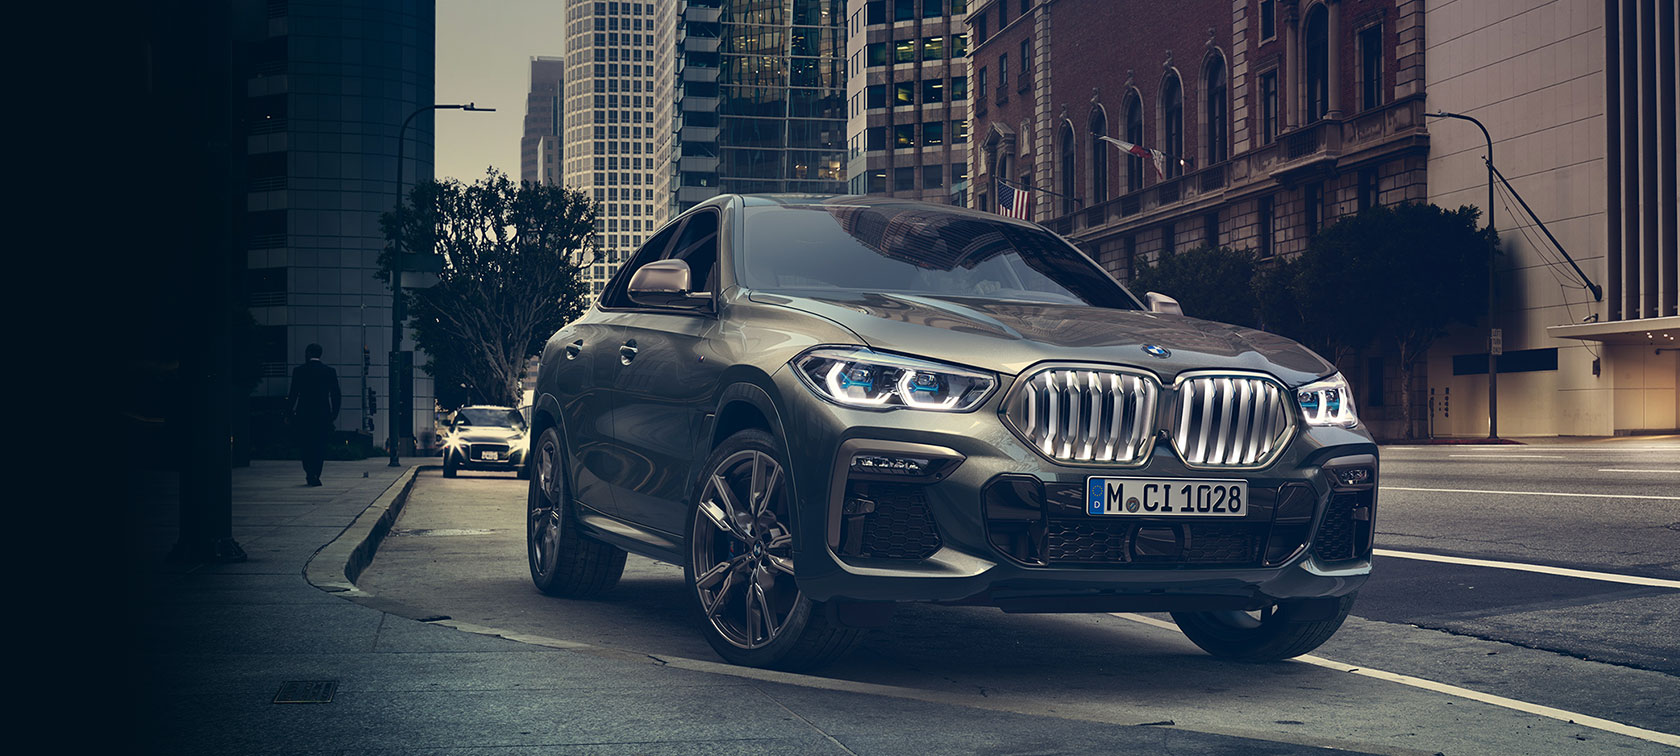 THE X6